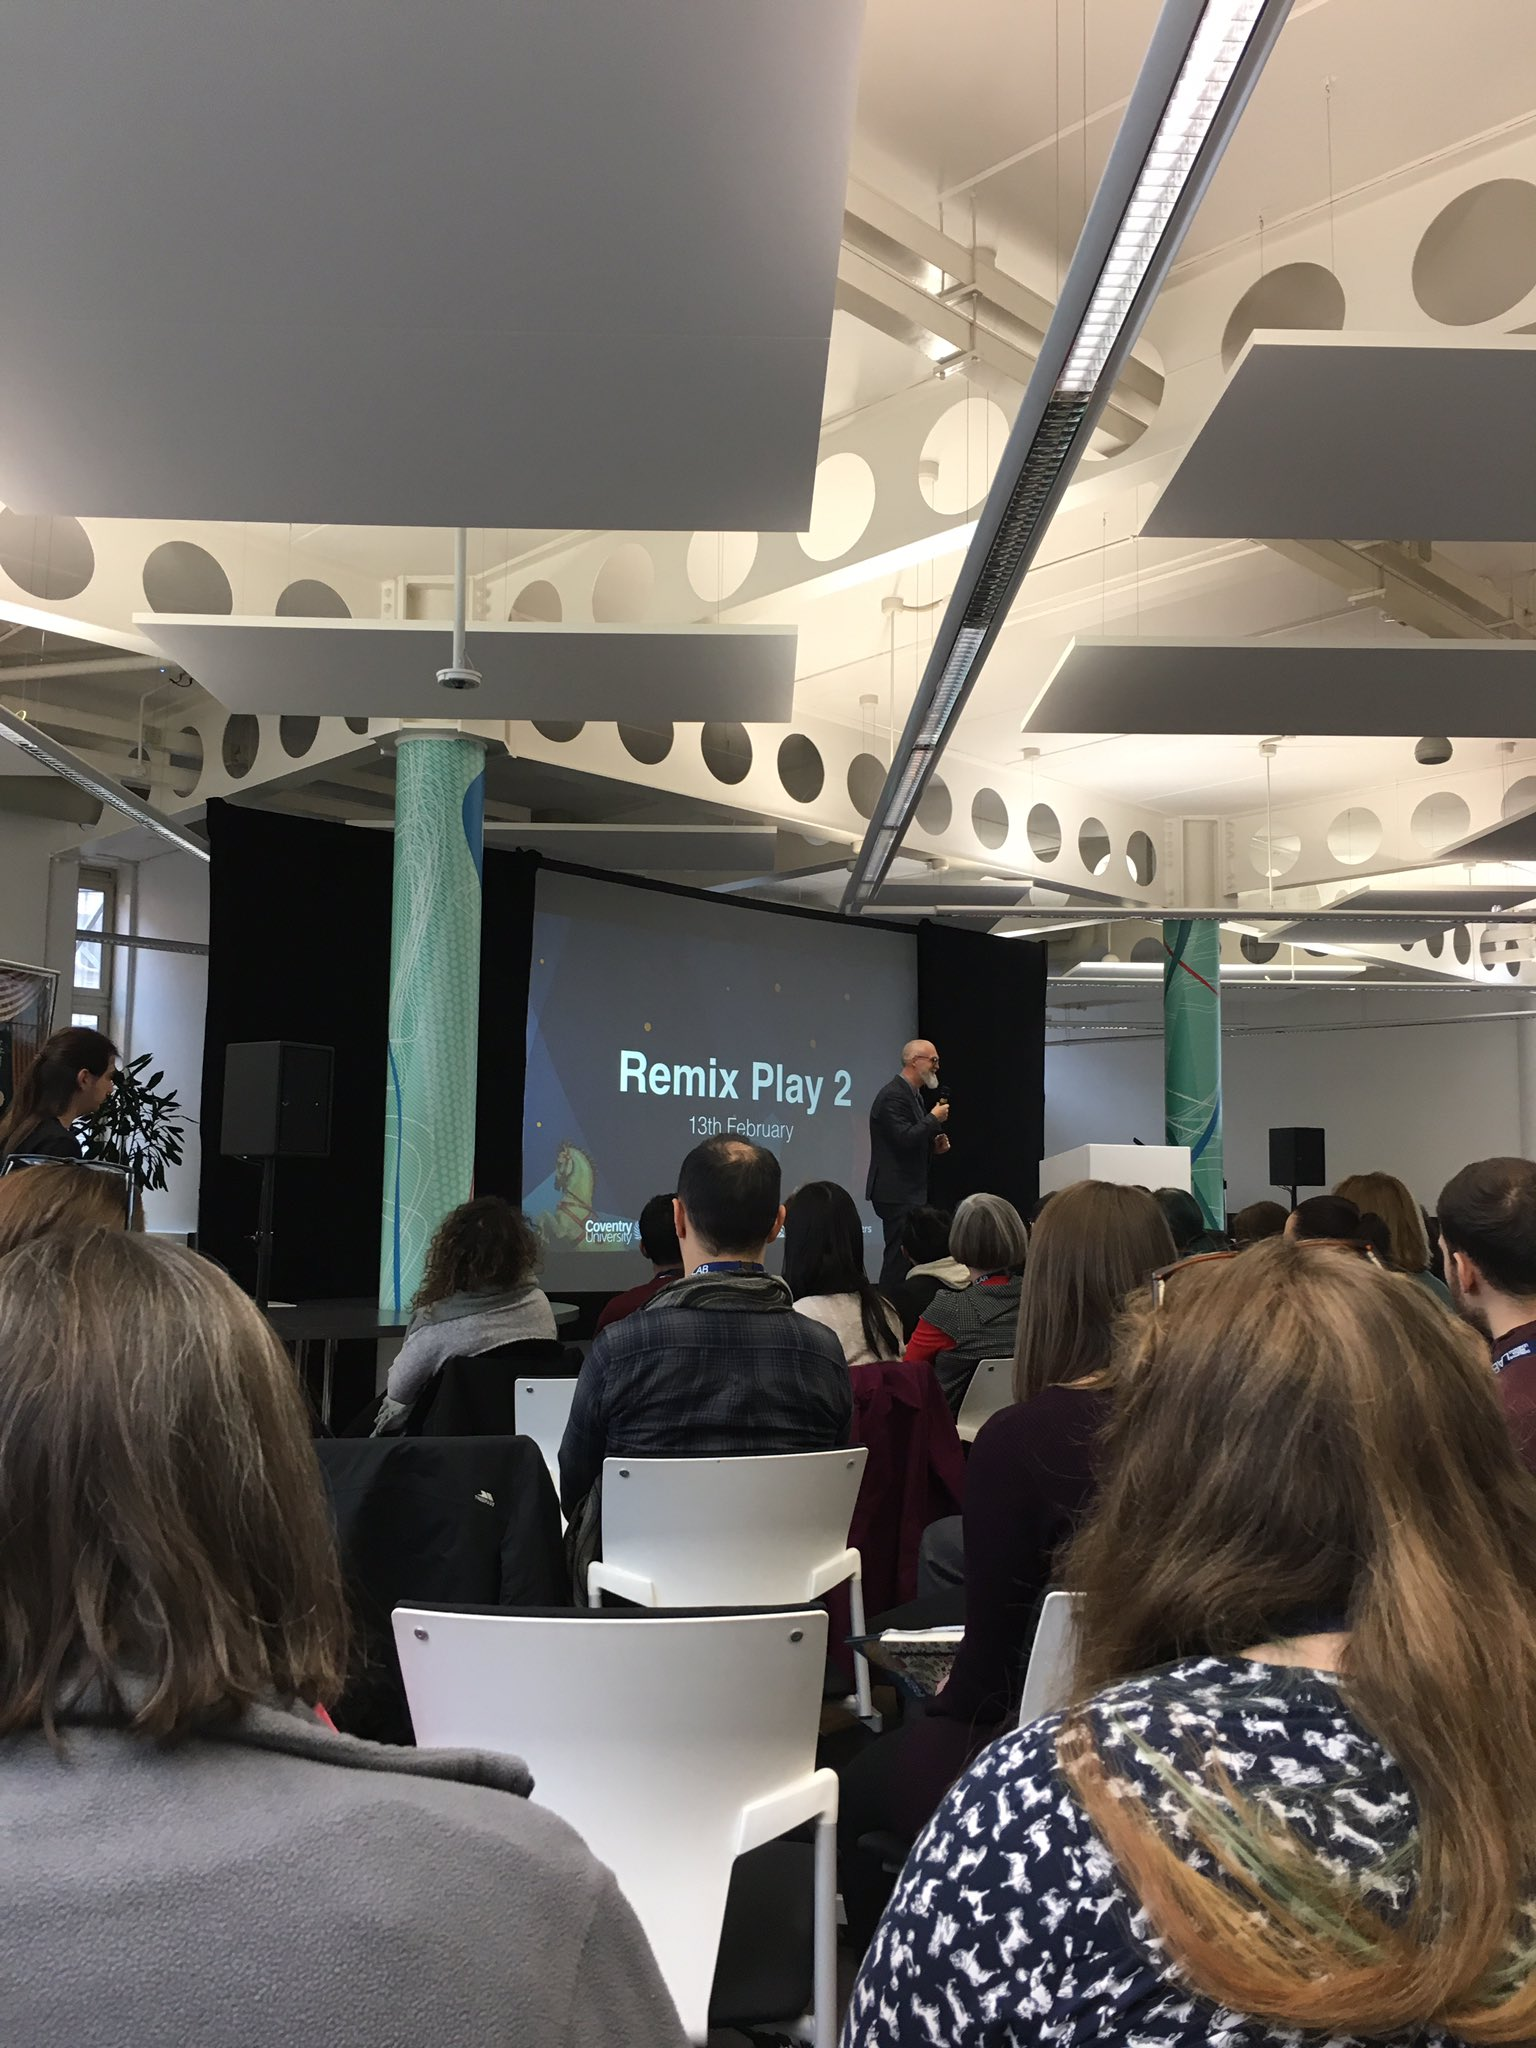 Staff from LTI attending #RemixPlay2 conference @disrupt_learn . Looking forward to sharing and applying newly acquired playful learning skills!  @Grldn_Jellybean @MolnarAggie @SarahNeyUK https://t.co/AXQgHMdiI6